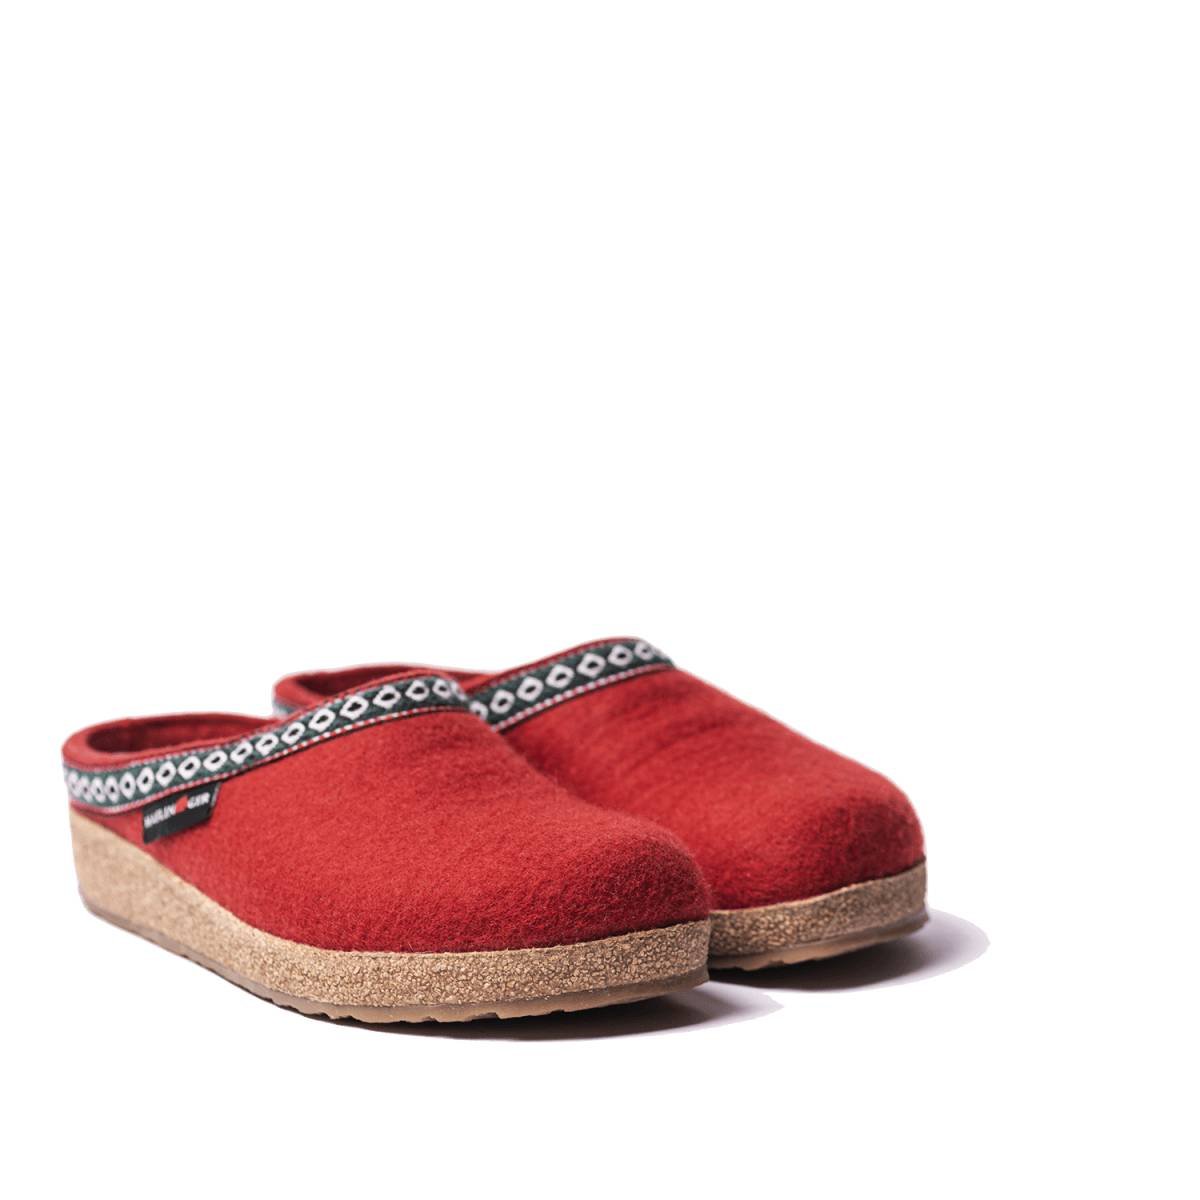 Haflinger Pantofola Grizzly Franzl Rosso - 36